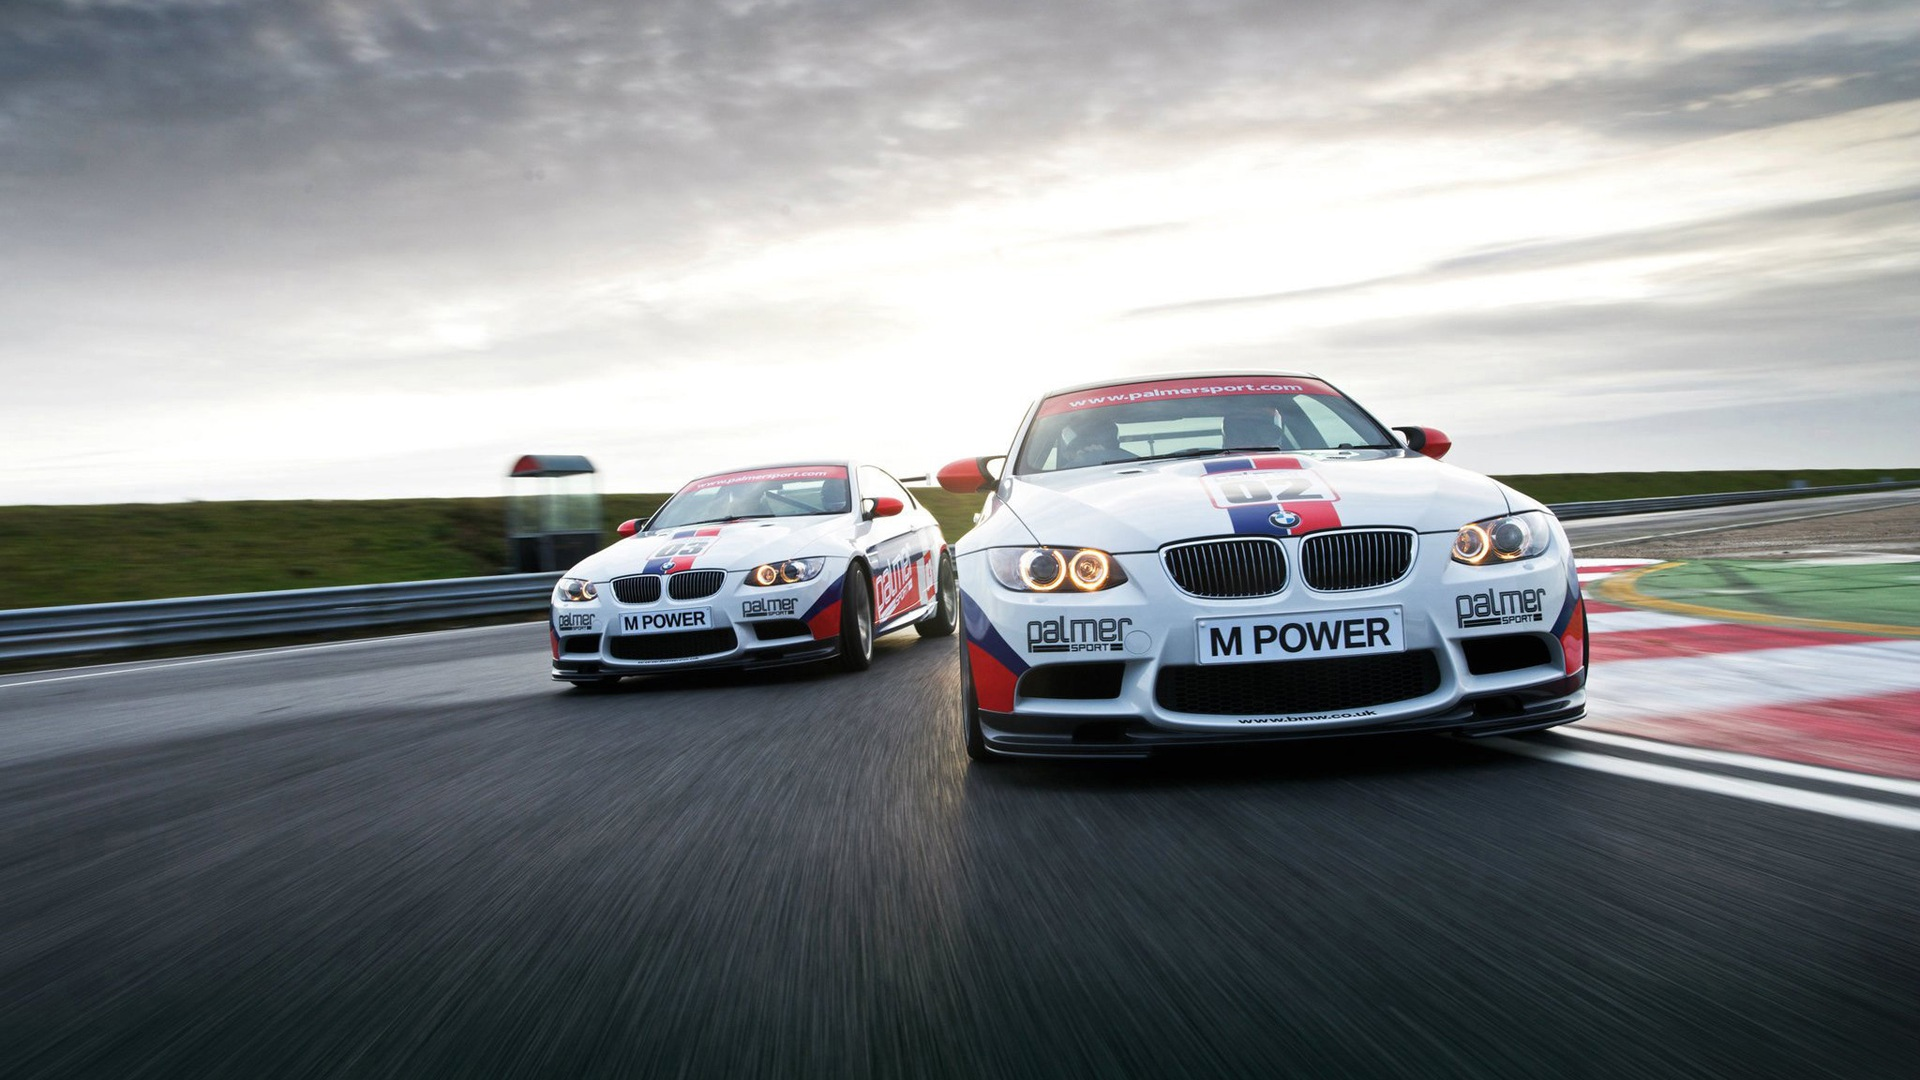 bmw racing car wallpaper